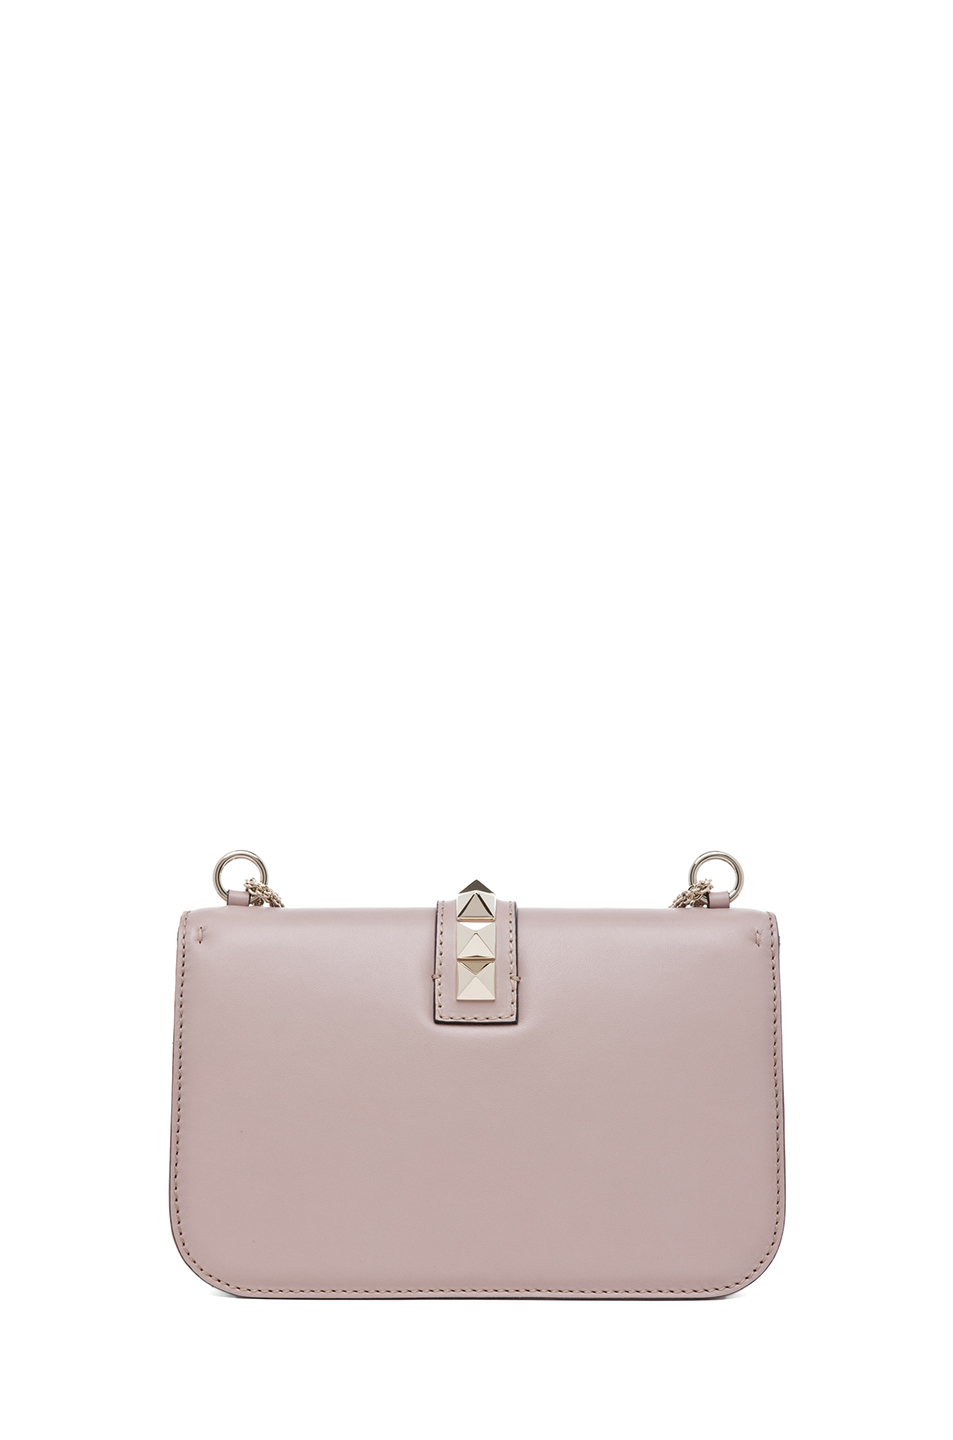 Valentino|Medium Lock Flap Bag in Poudre